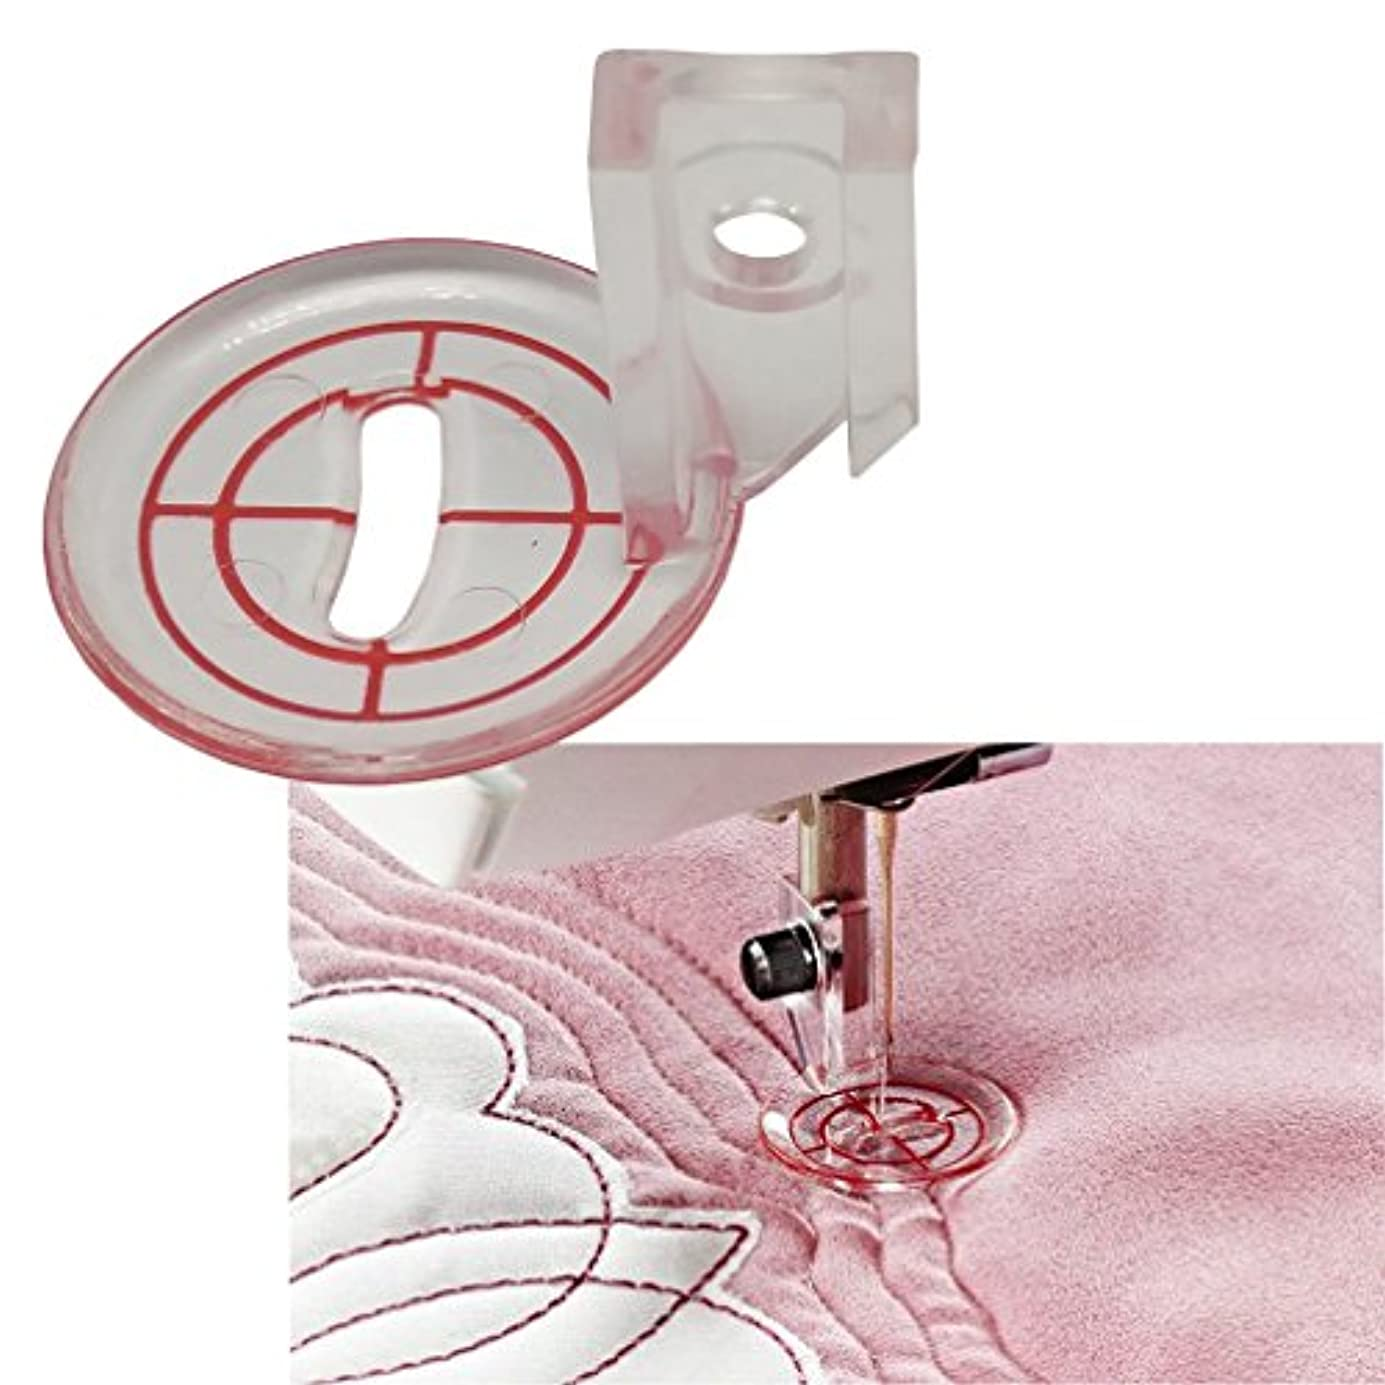 HONEYSEW Pressure Foot Free Motion Echo Quilt Foot for Viking #413320245 klilly9654